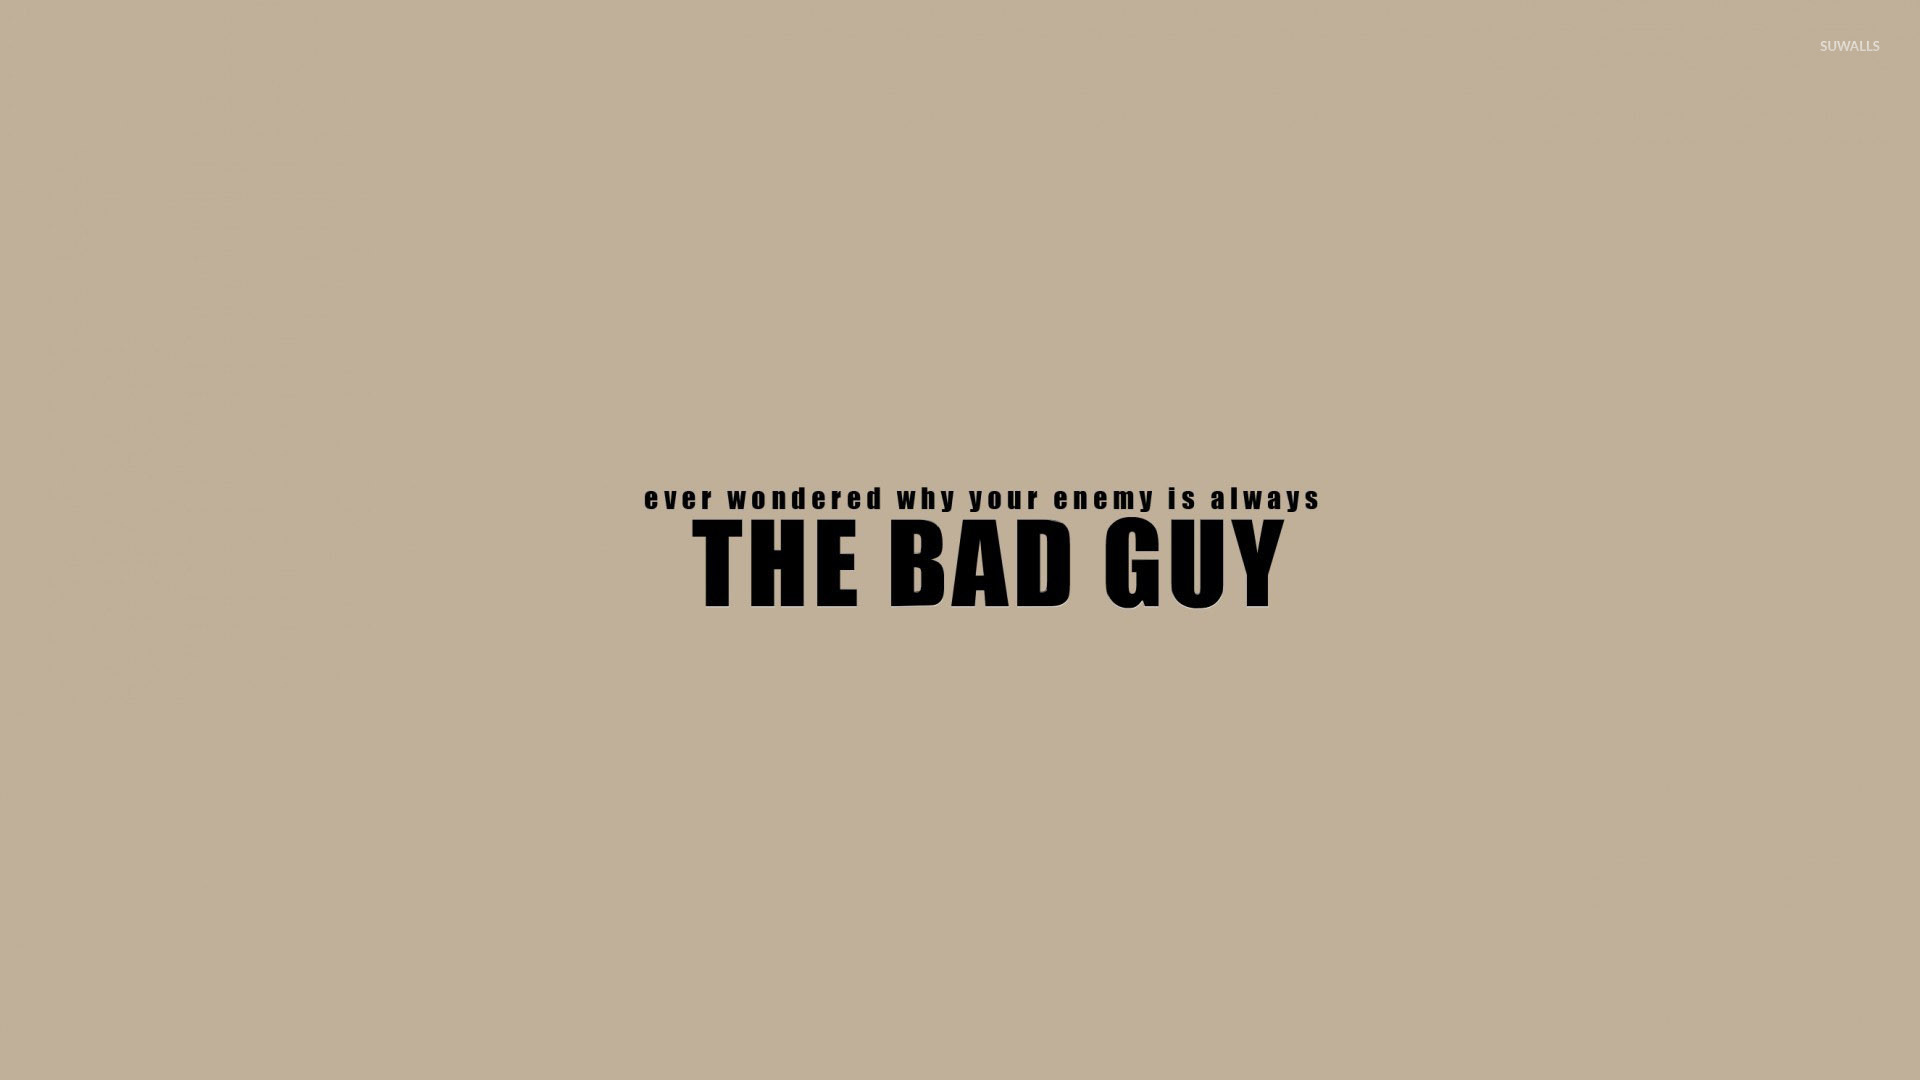 The enemy is always the bad guy wallpaper